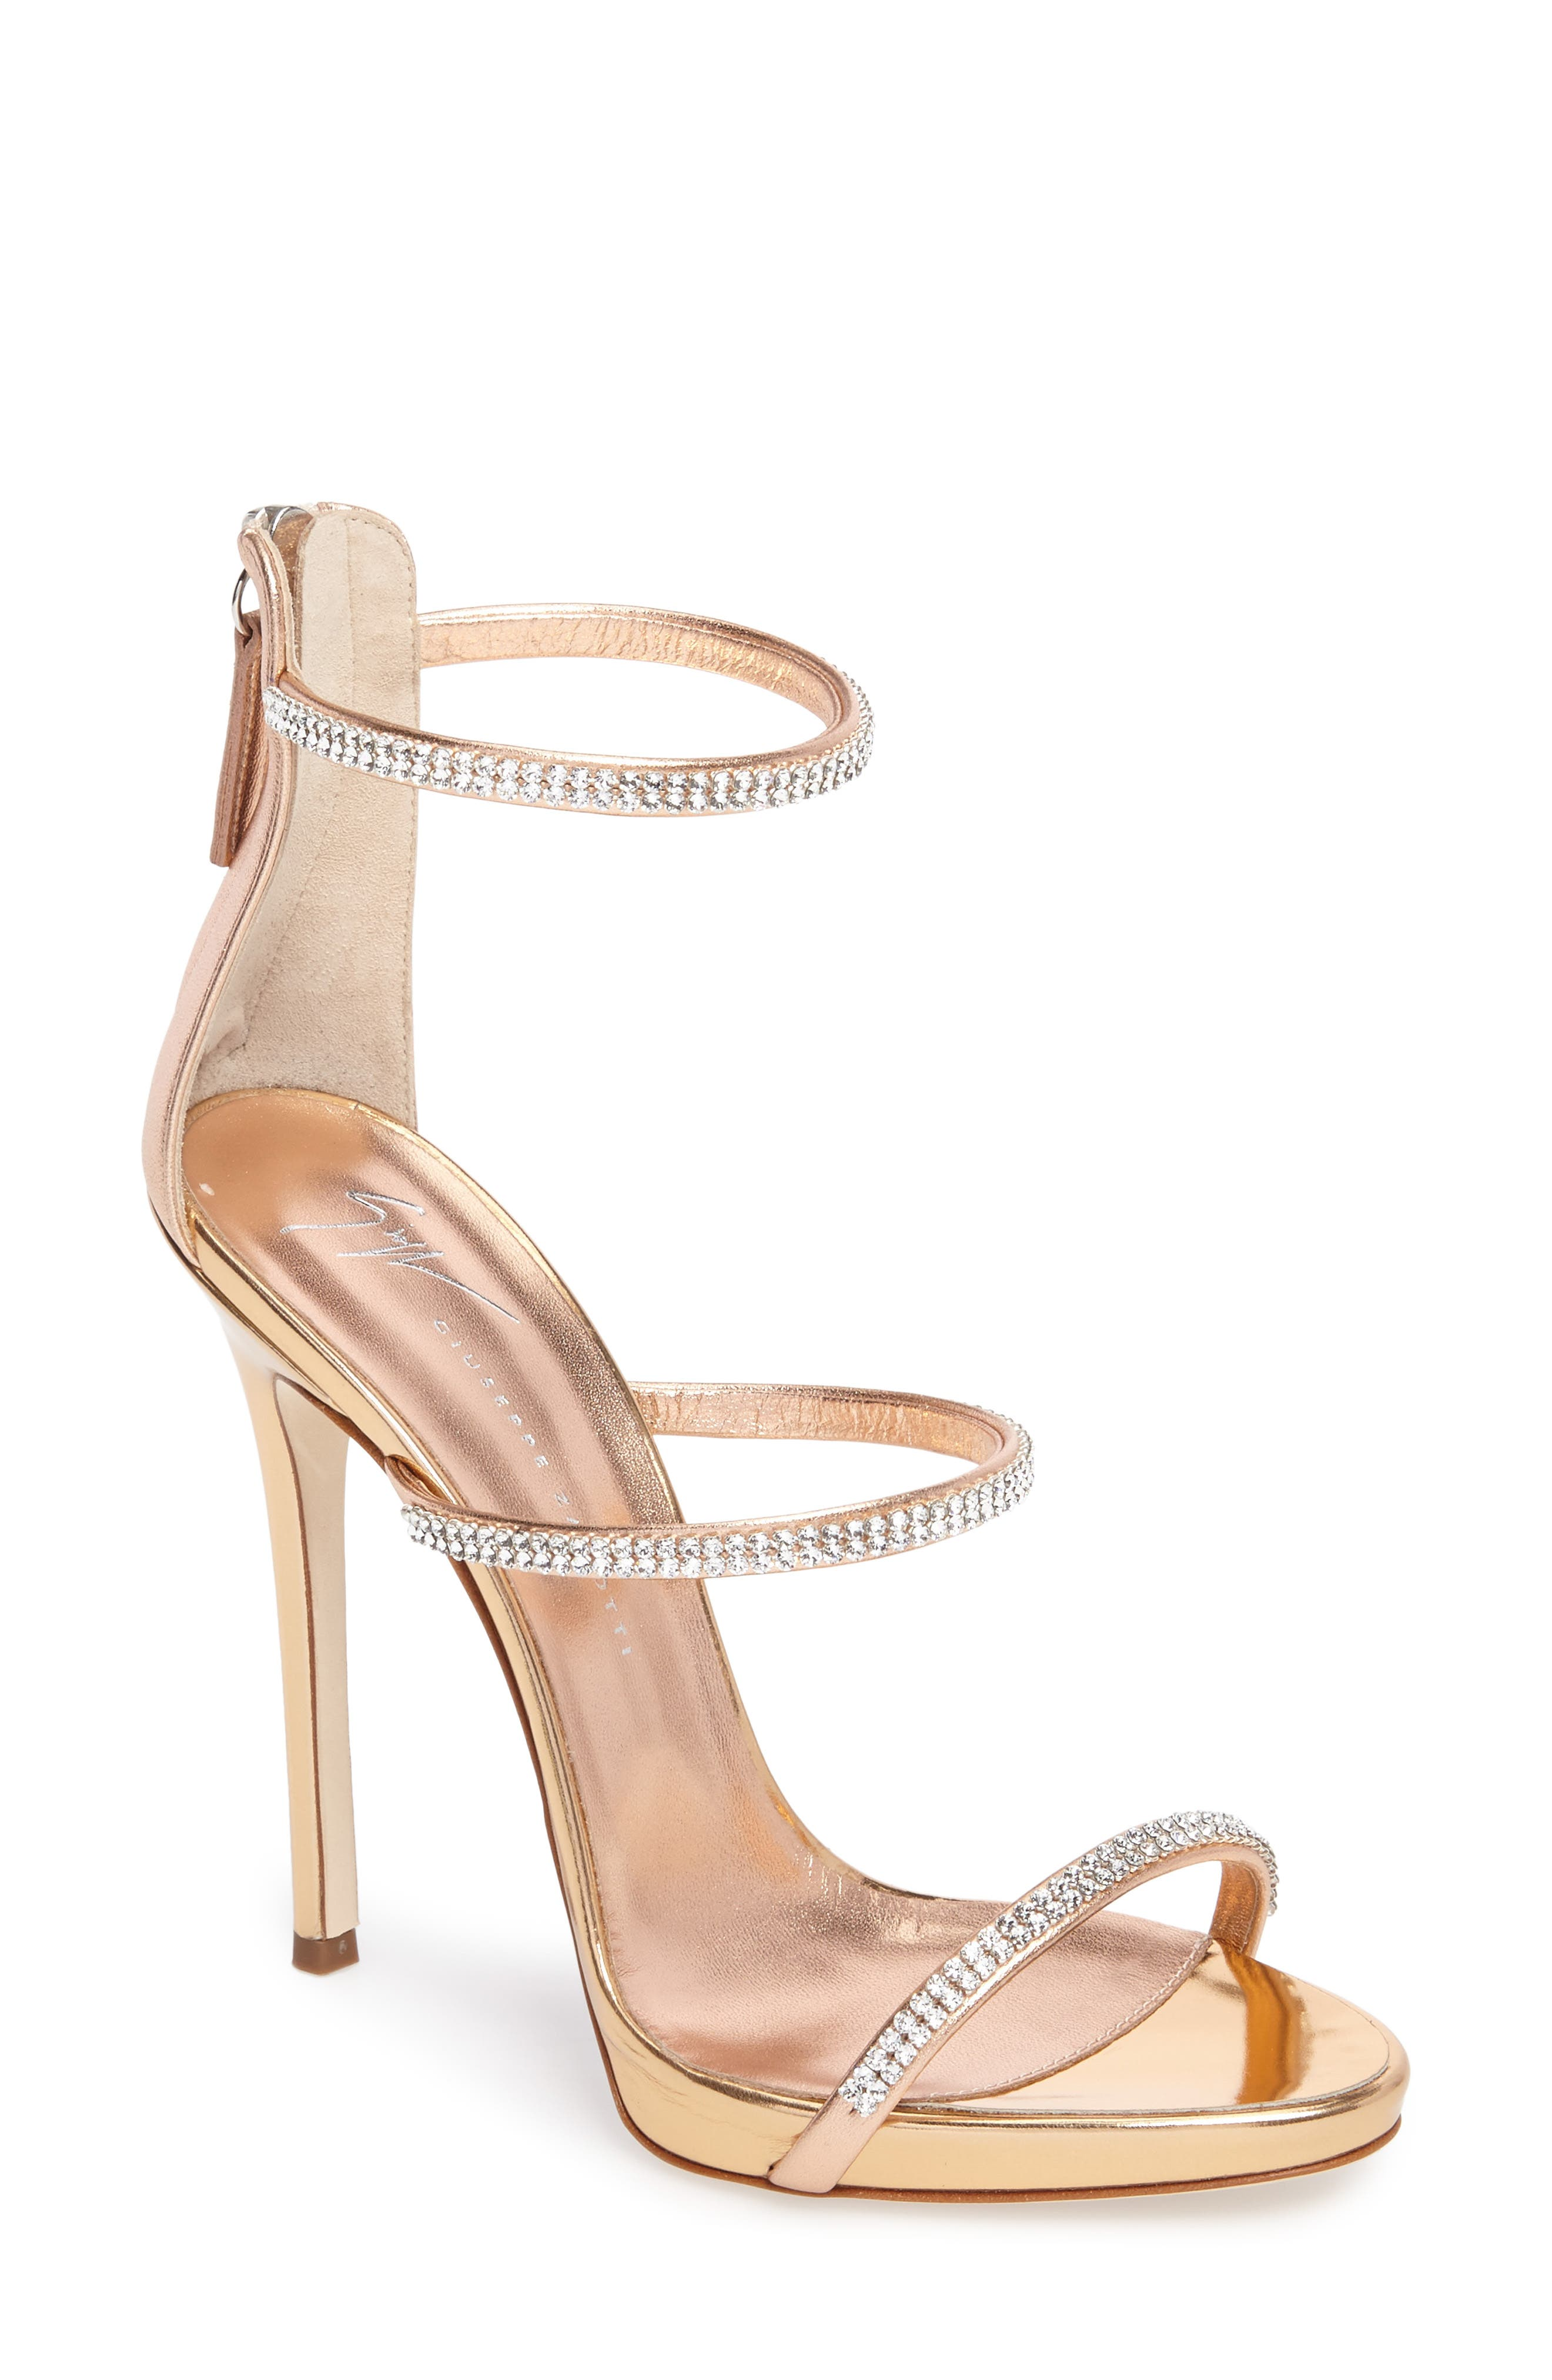 Alternate Image 1 Selected - Giuseppe Zanotti Coline Crystal Sandal (Women)